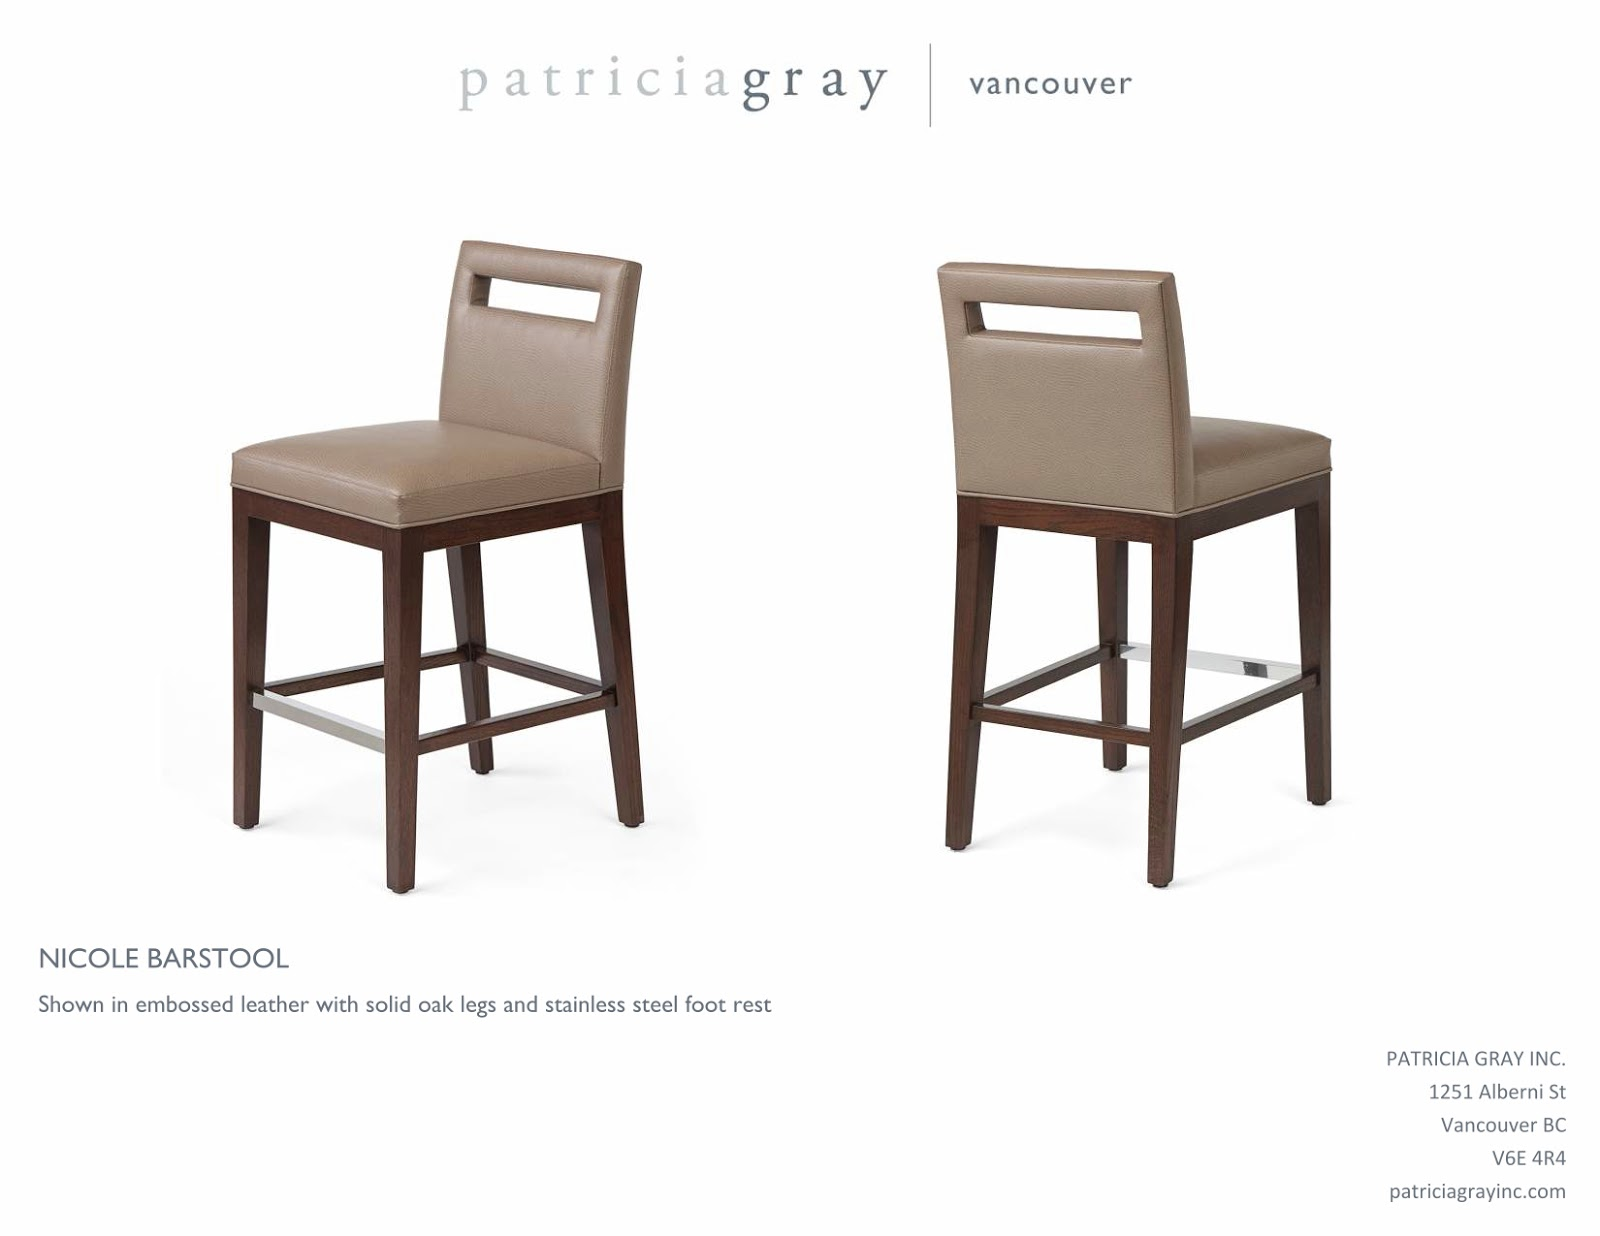 Nicole Barstool   Custom Furniture Design Vancouver. Patricia Gray   Interior Design Blog